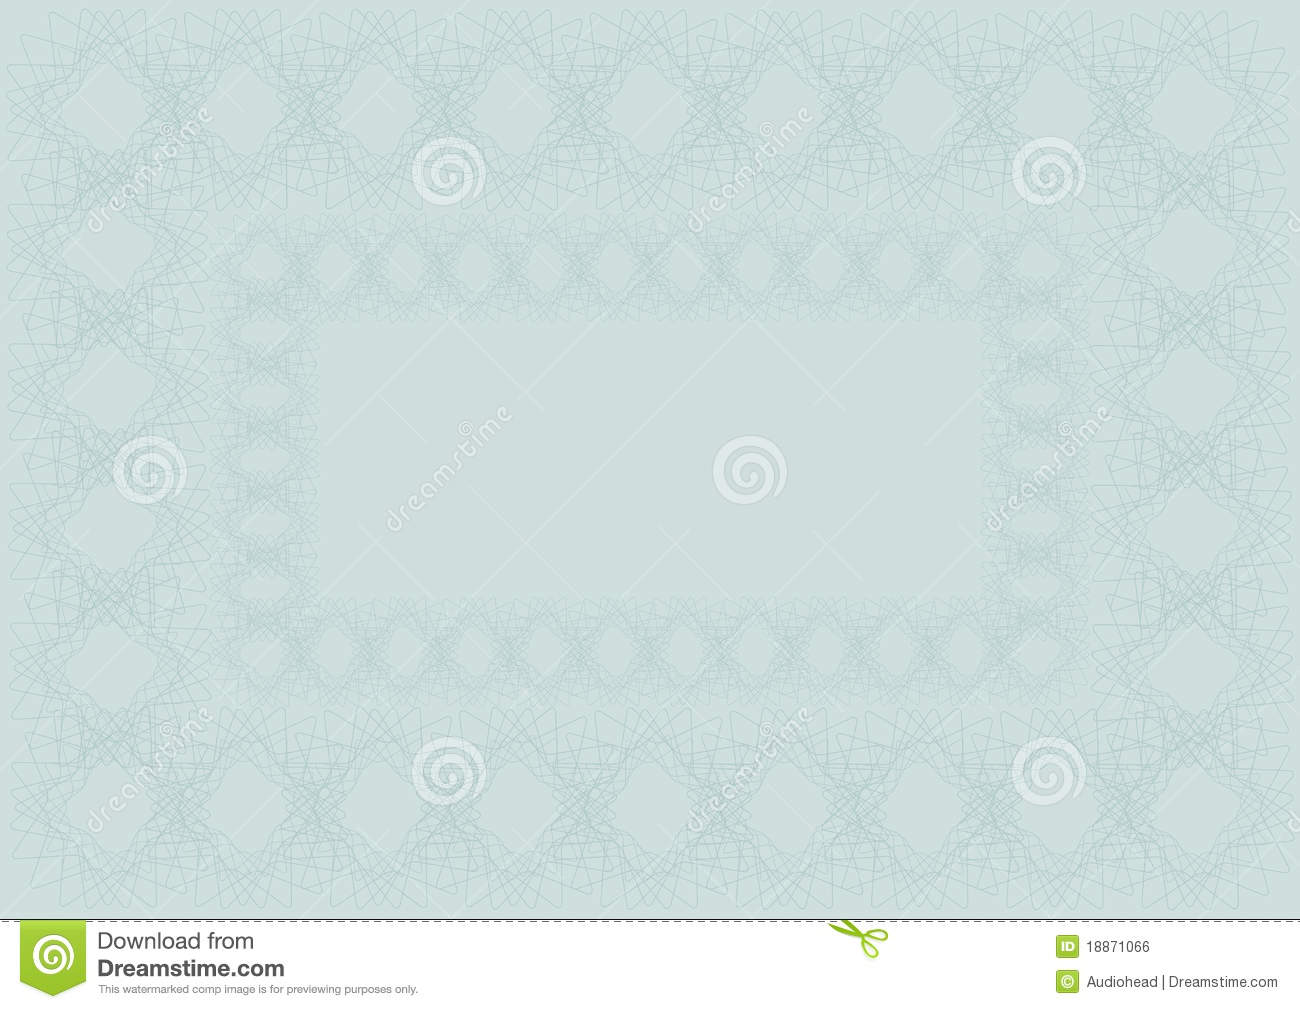 Blank Certificate Background Royalty Free Stock Image - Image ...